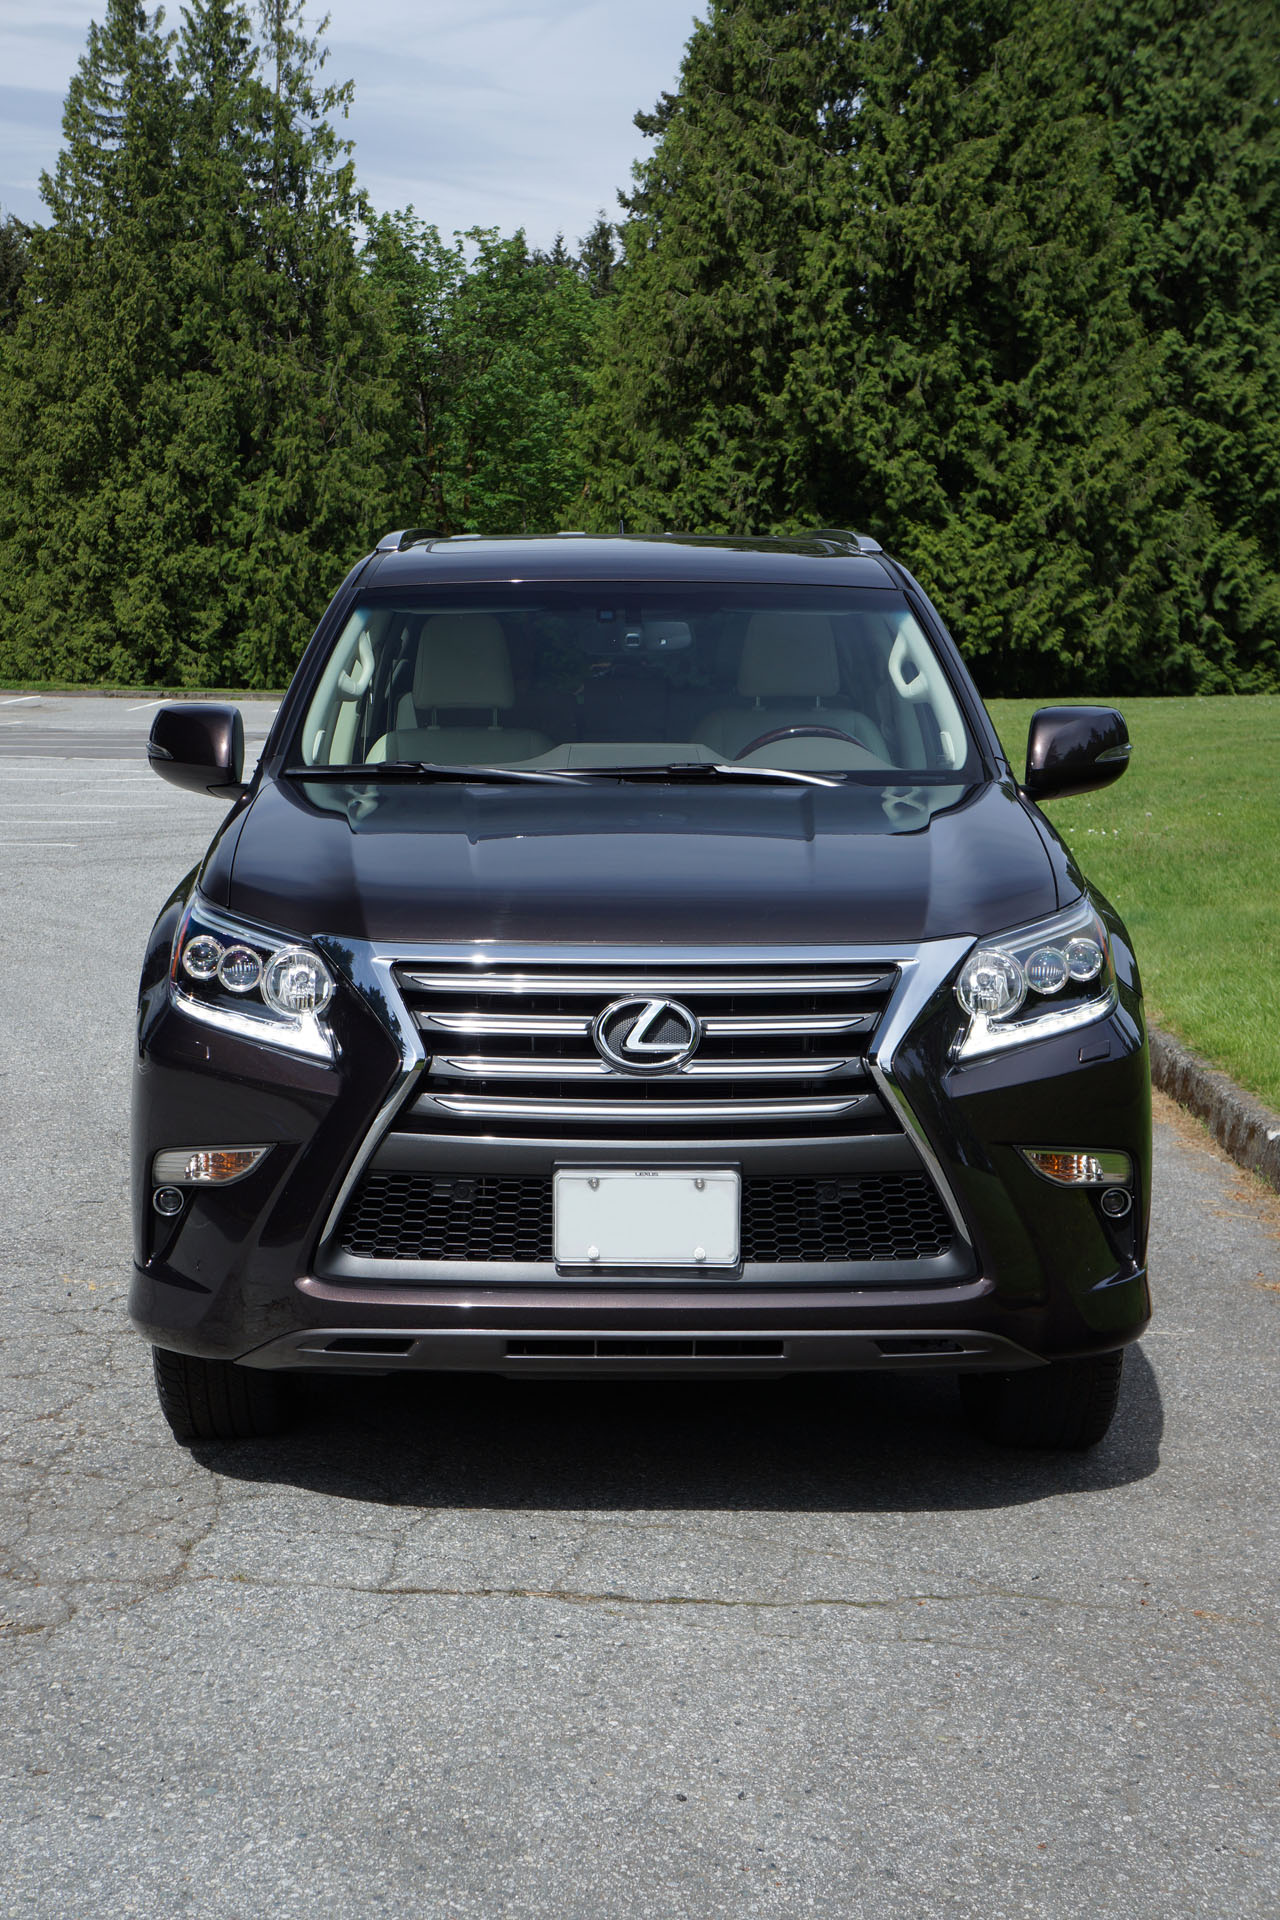 2014 lexus gx 460 premium road test review carcostcanada. Black Bedroom Furniture Sets. Home Design Ideas